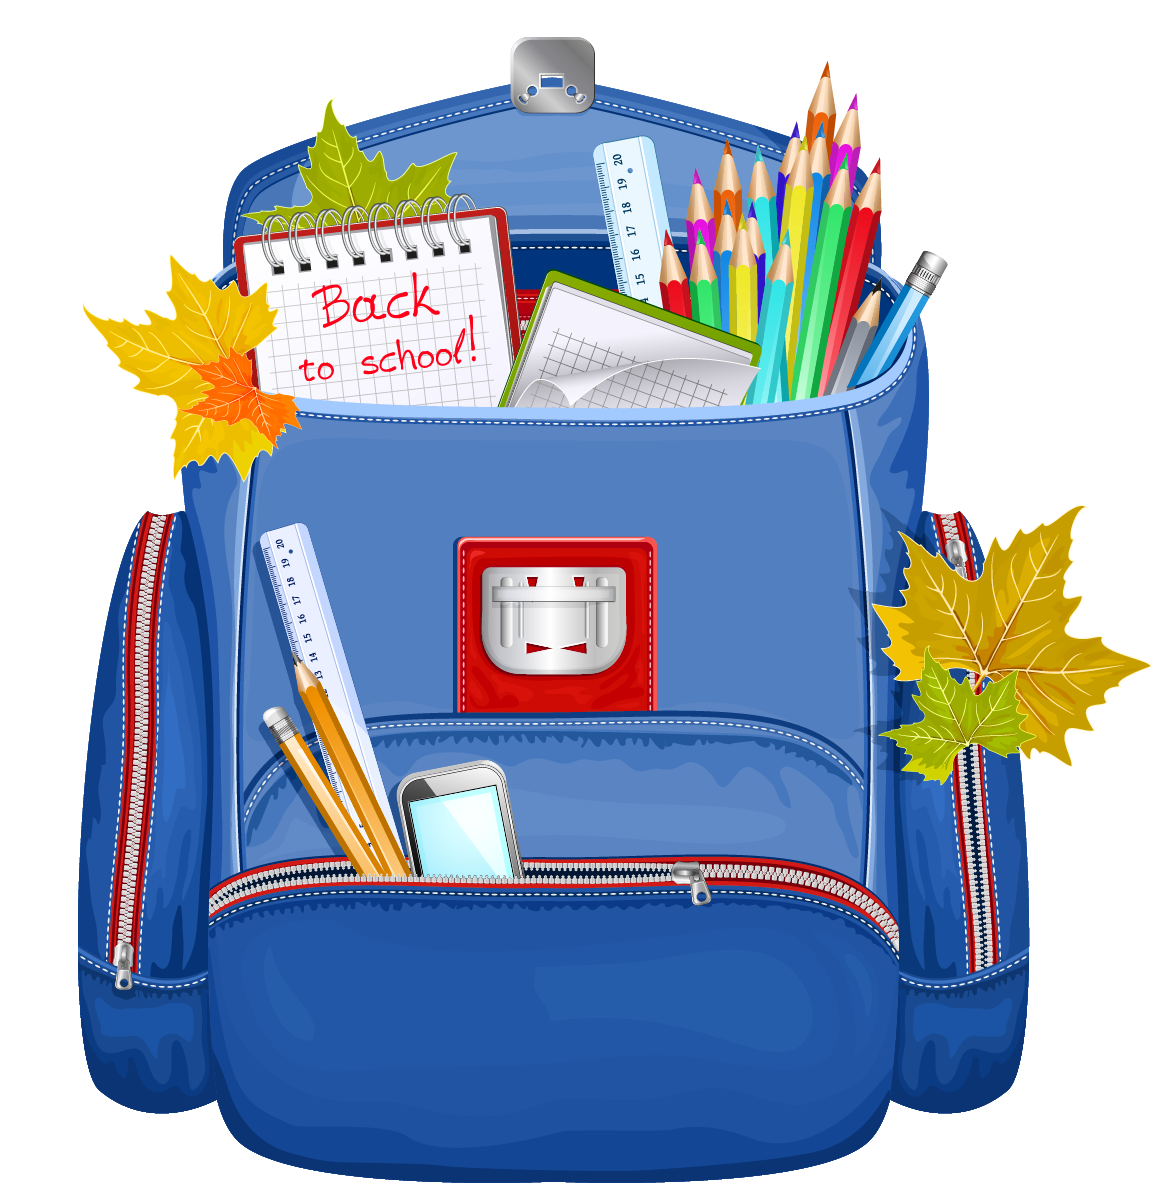 Free animated back to school clipart jpg royalty free Back packs filled with food clipart - ClipartFest jpg royalty free